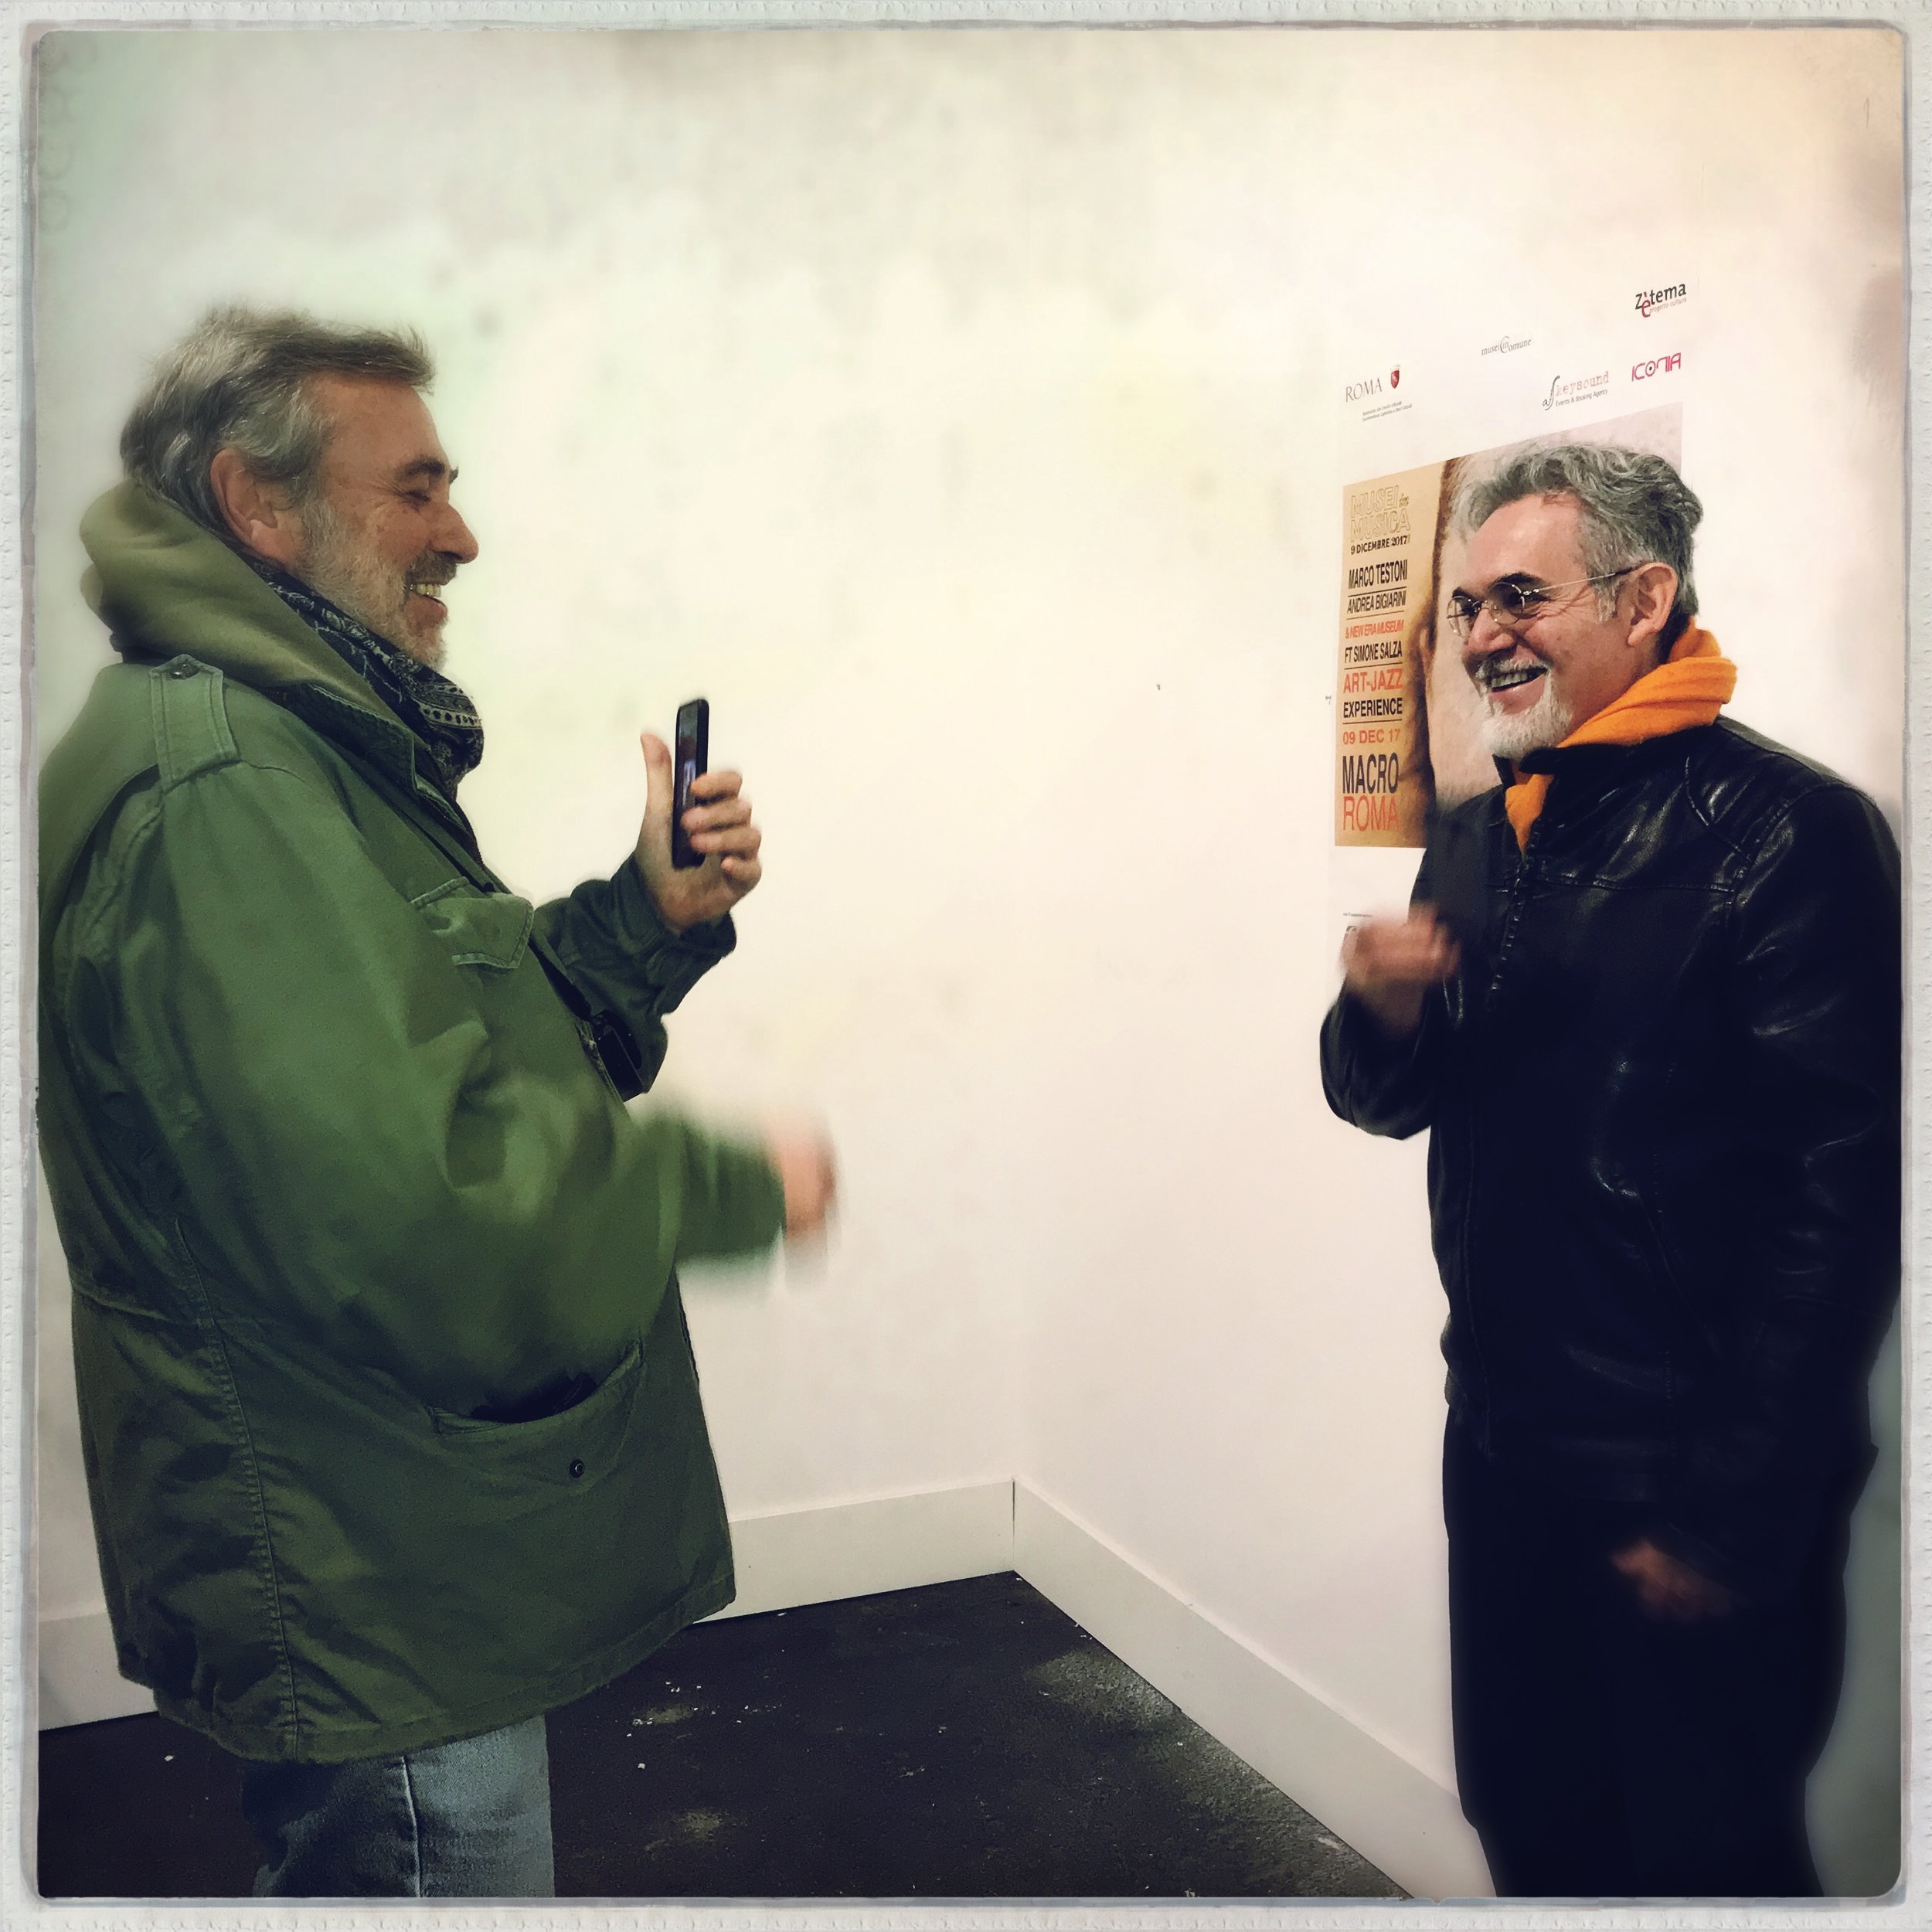 Andrea Bigiarini (Left) and Marco Testoni (right)  - Photo by Giuseppe Iannicelli.